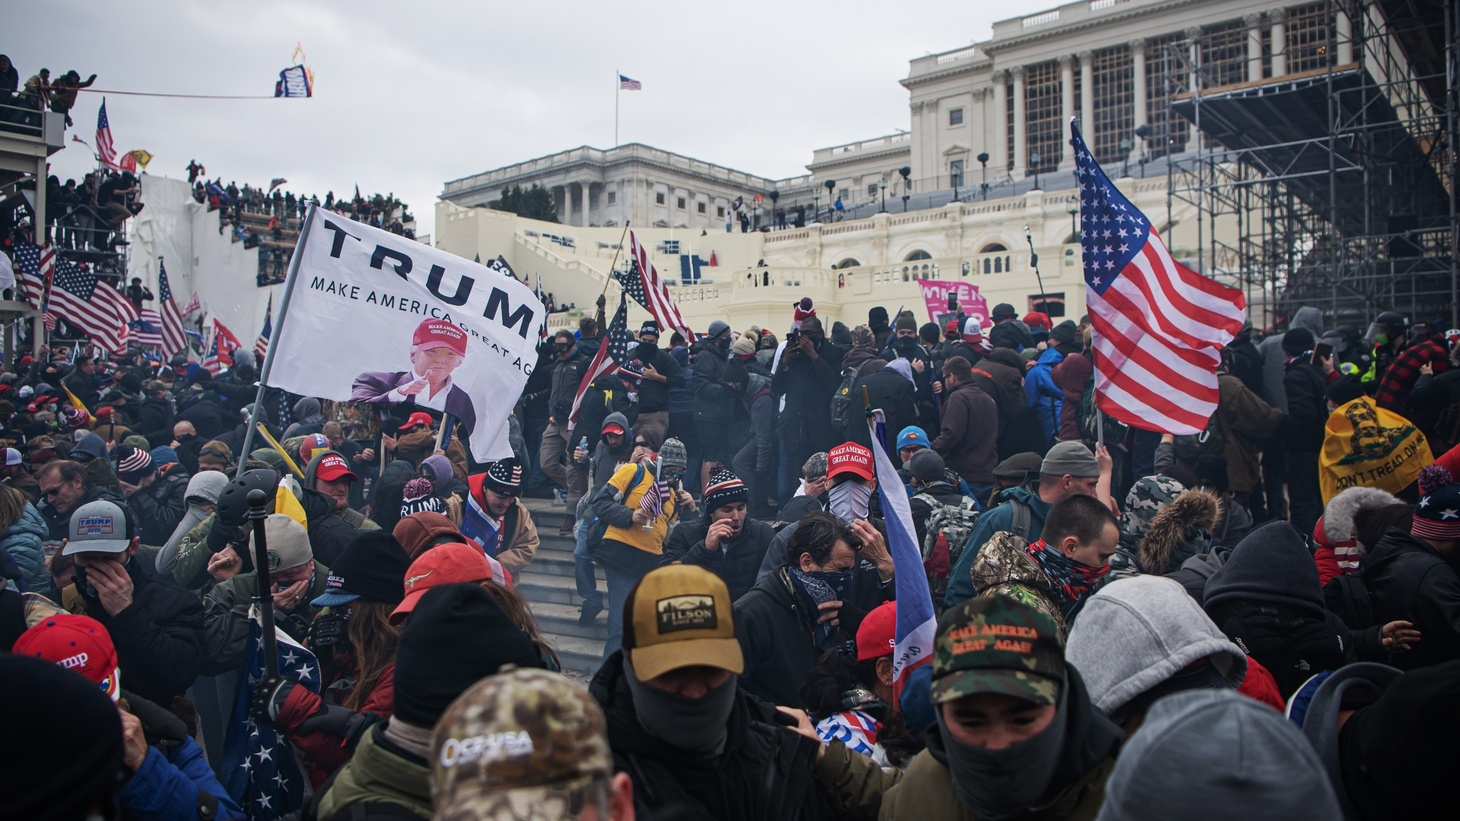 People run away from tear gas as pro-Trump supporters storm the United States Capitol after a March to Save America rally on January 6, 2021 in Washington, DC, USA.